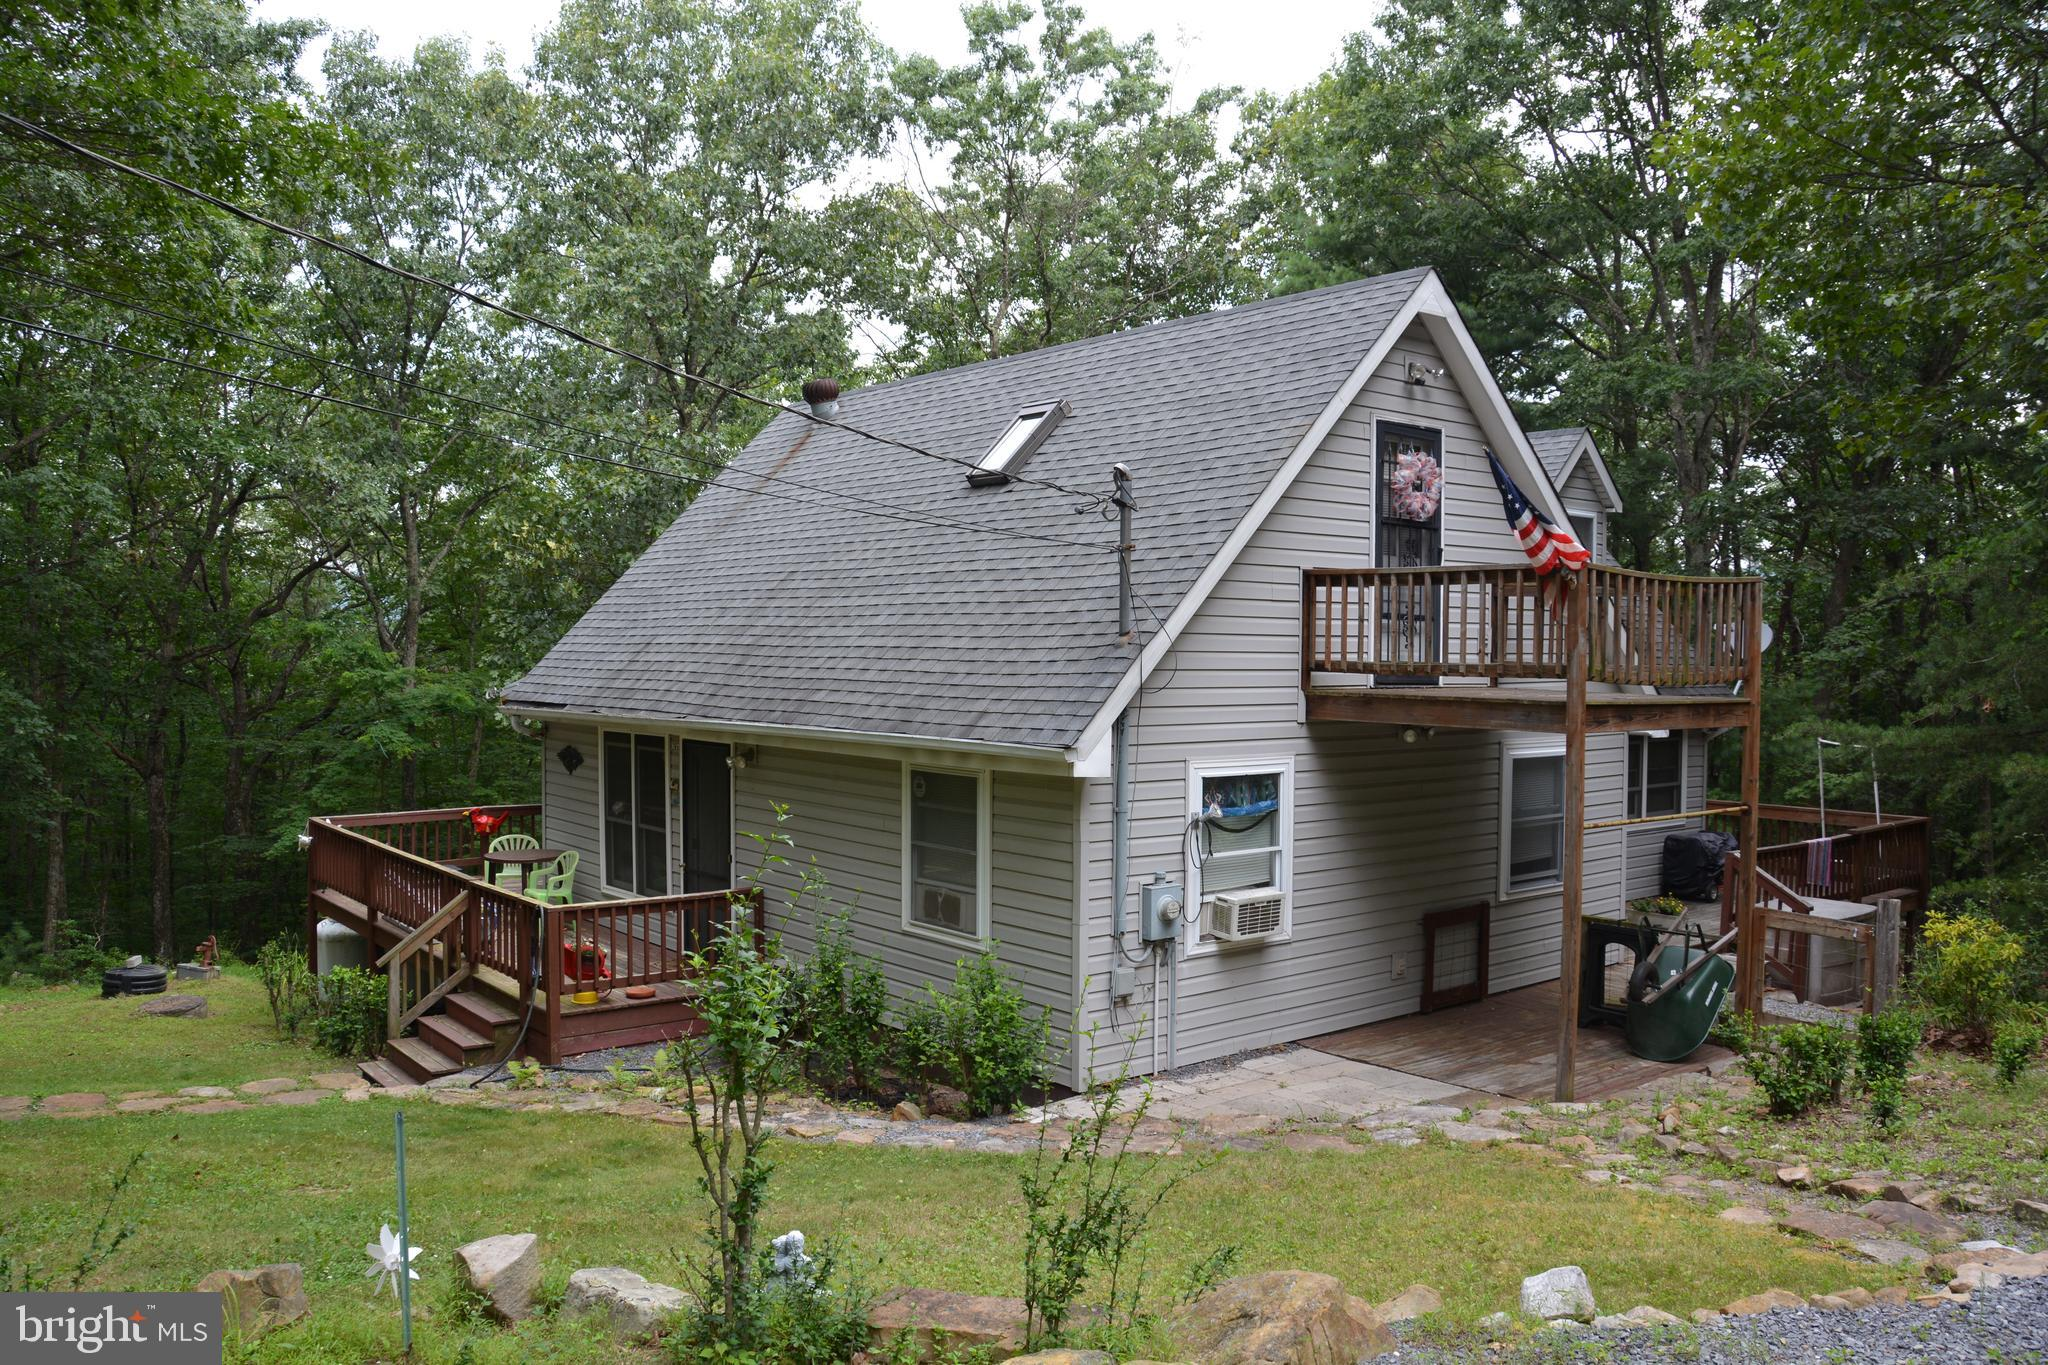 265 RITTER DRIVE, CAPON BRIDGE, WV 26711